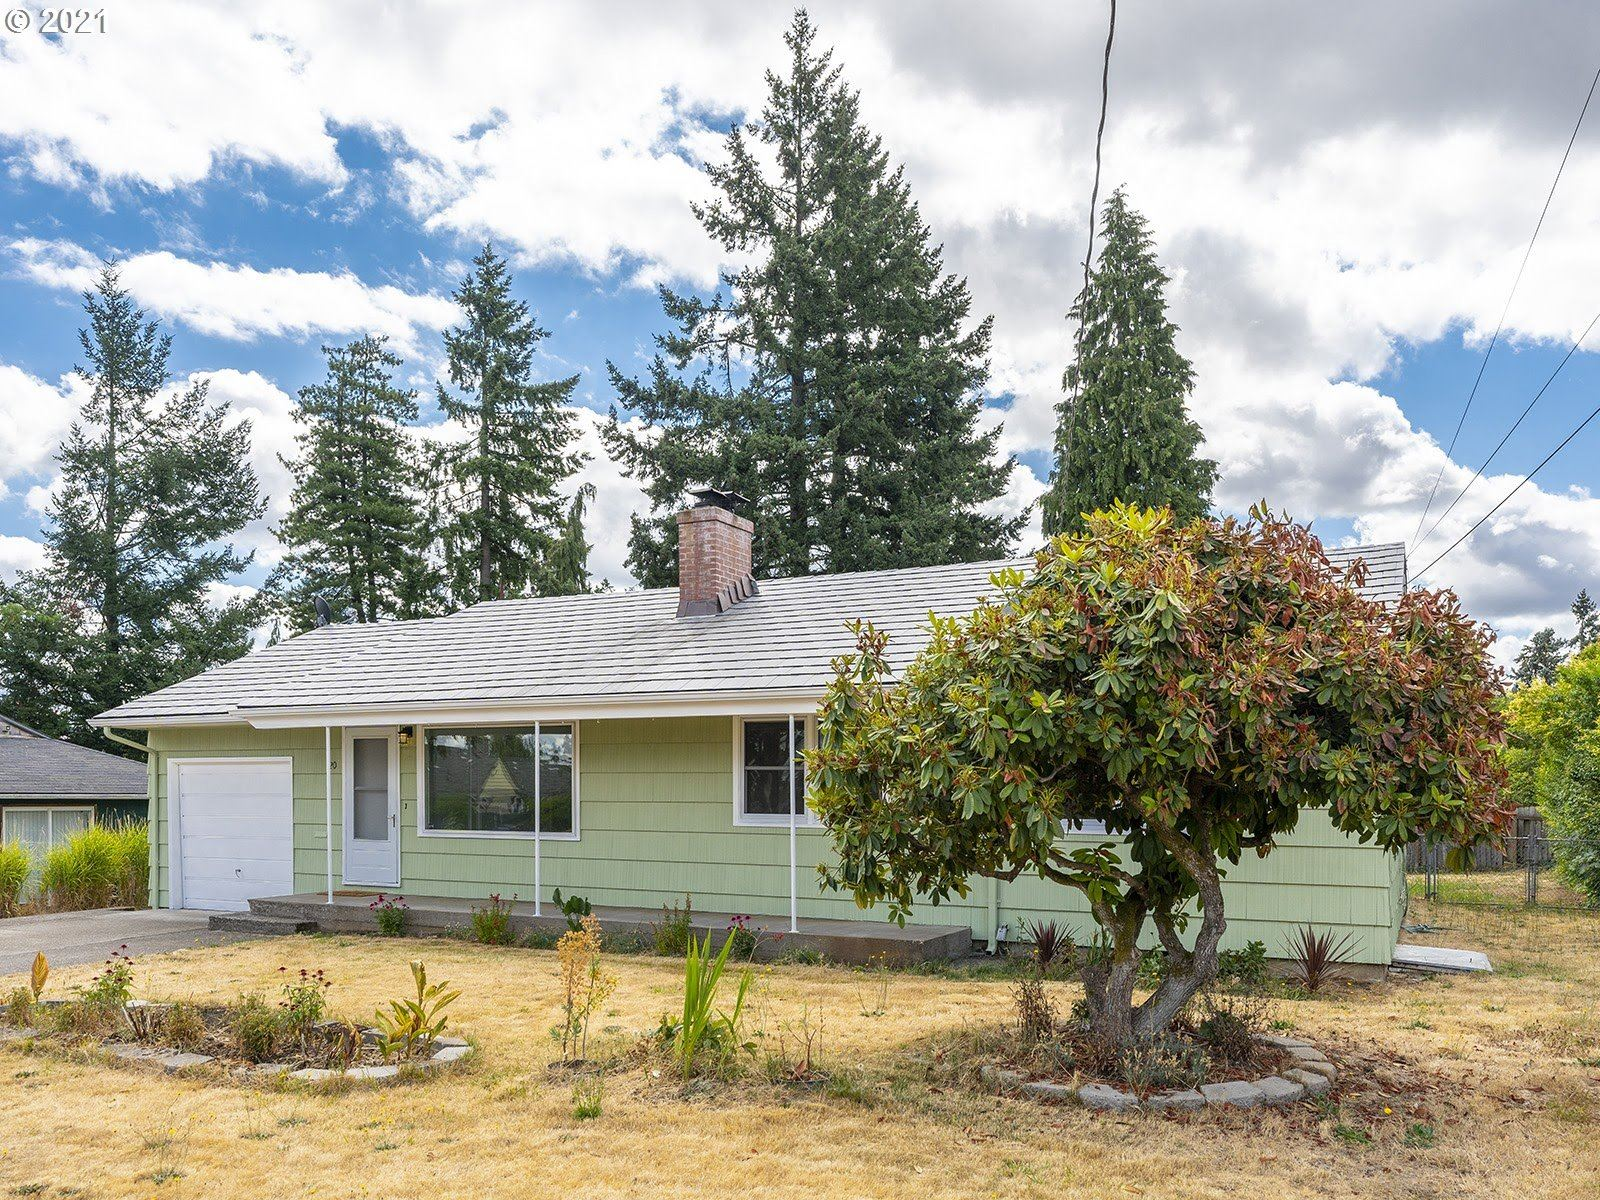 120 BEVERLY DR, Oregon City, OR 97045 - MLS#: 21311656